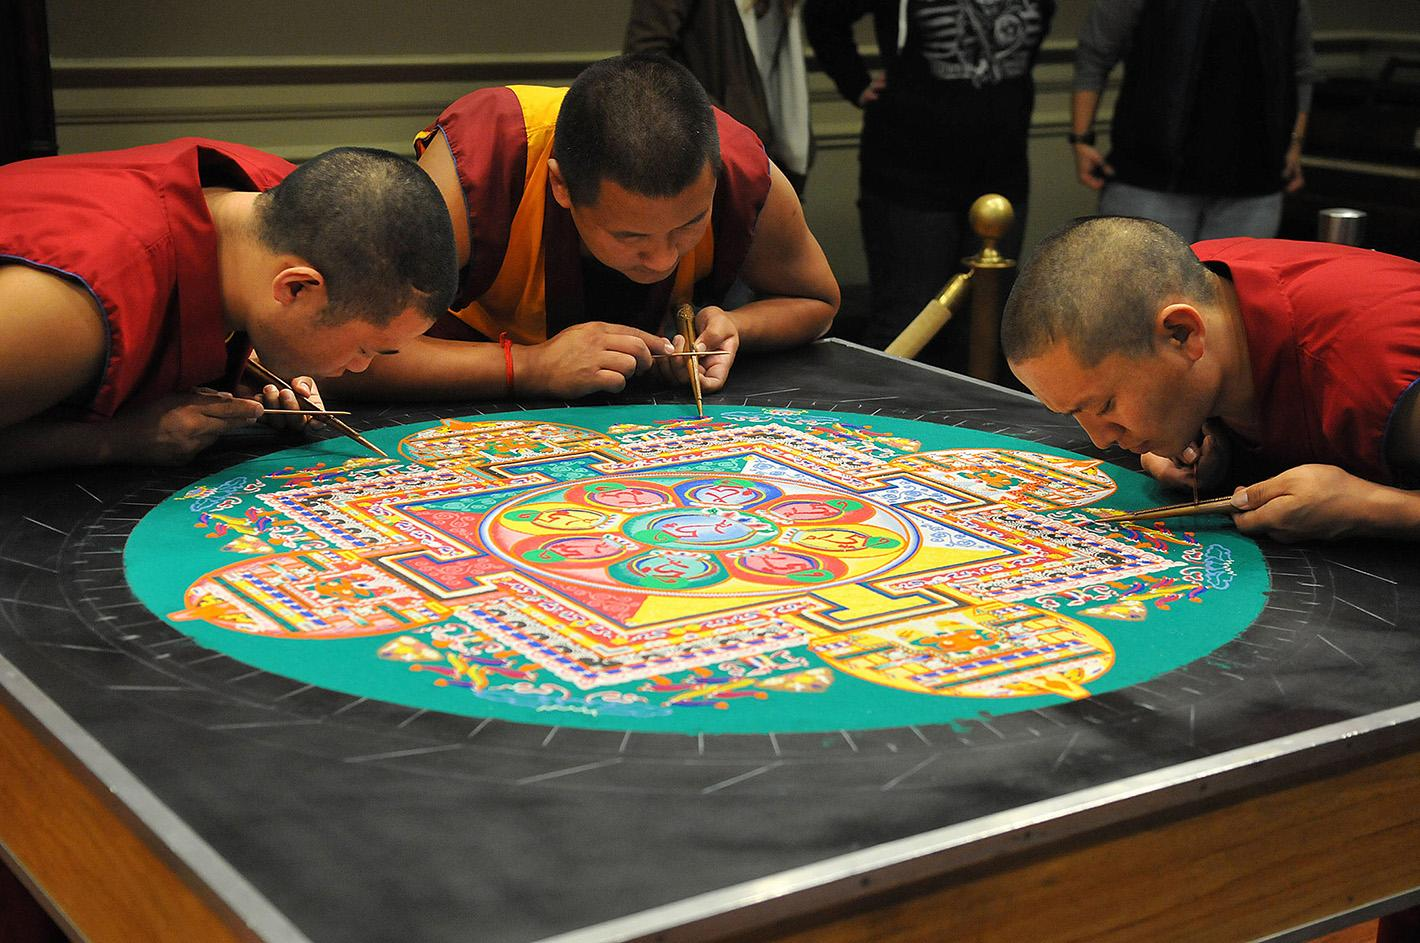 Tibetan monks creating a sand mandala. The monks were at the museum in 2014 as part of a visit sponsored by the Mary B. Martin School of the Arts.